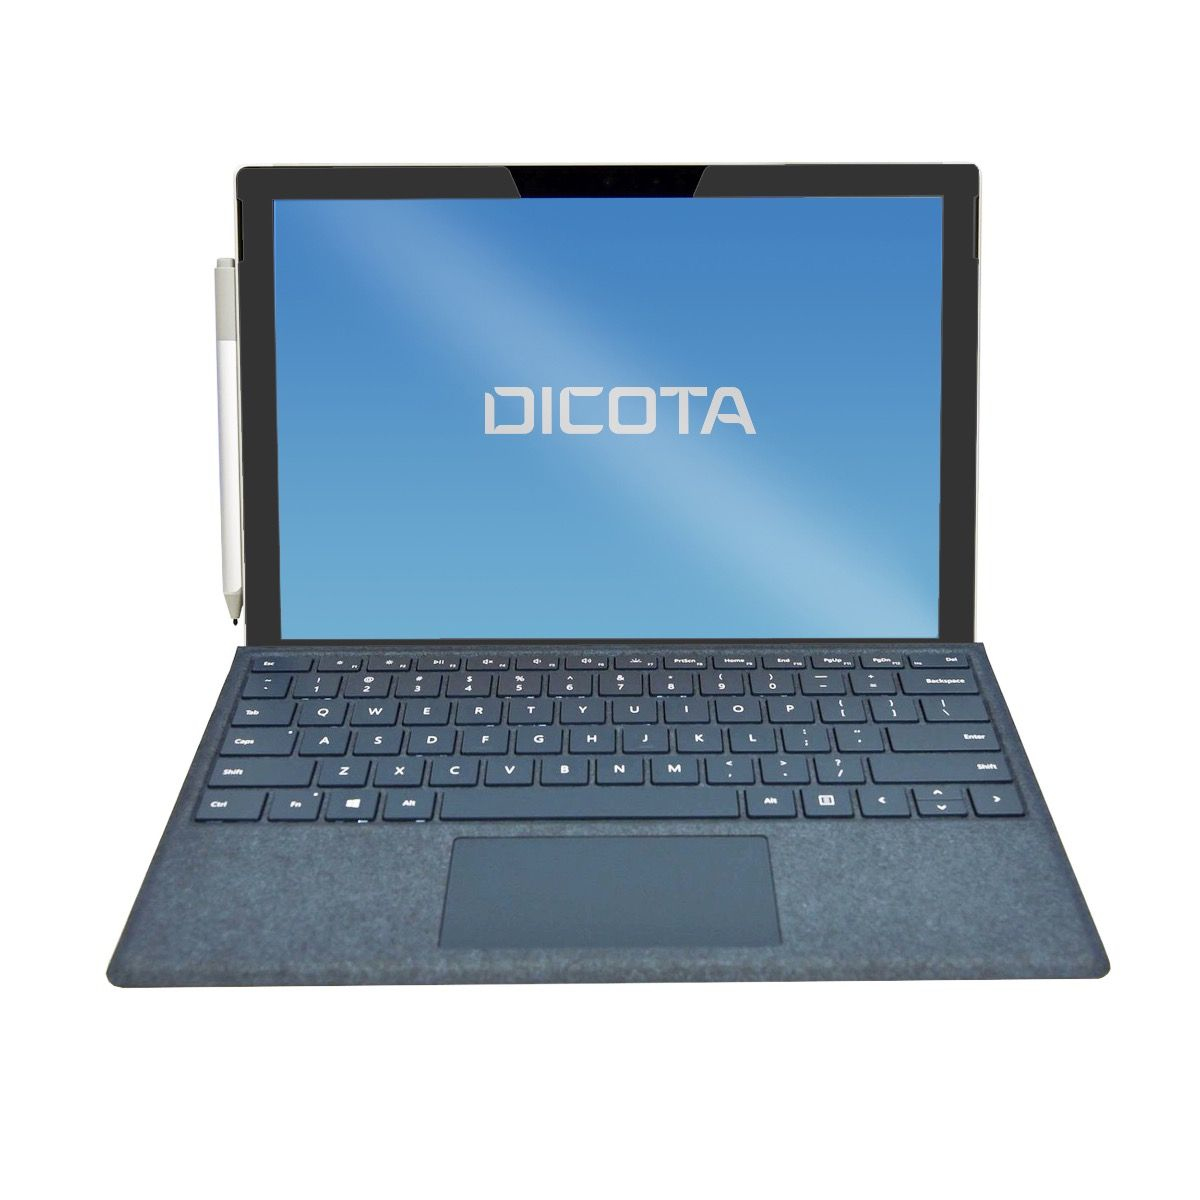 """Dicota D31586 display privacy filters Framed display privacy filter 31.2 cm (12.3"""")"""